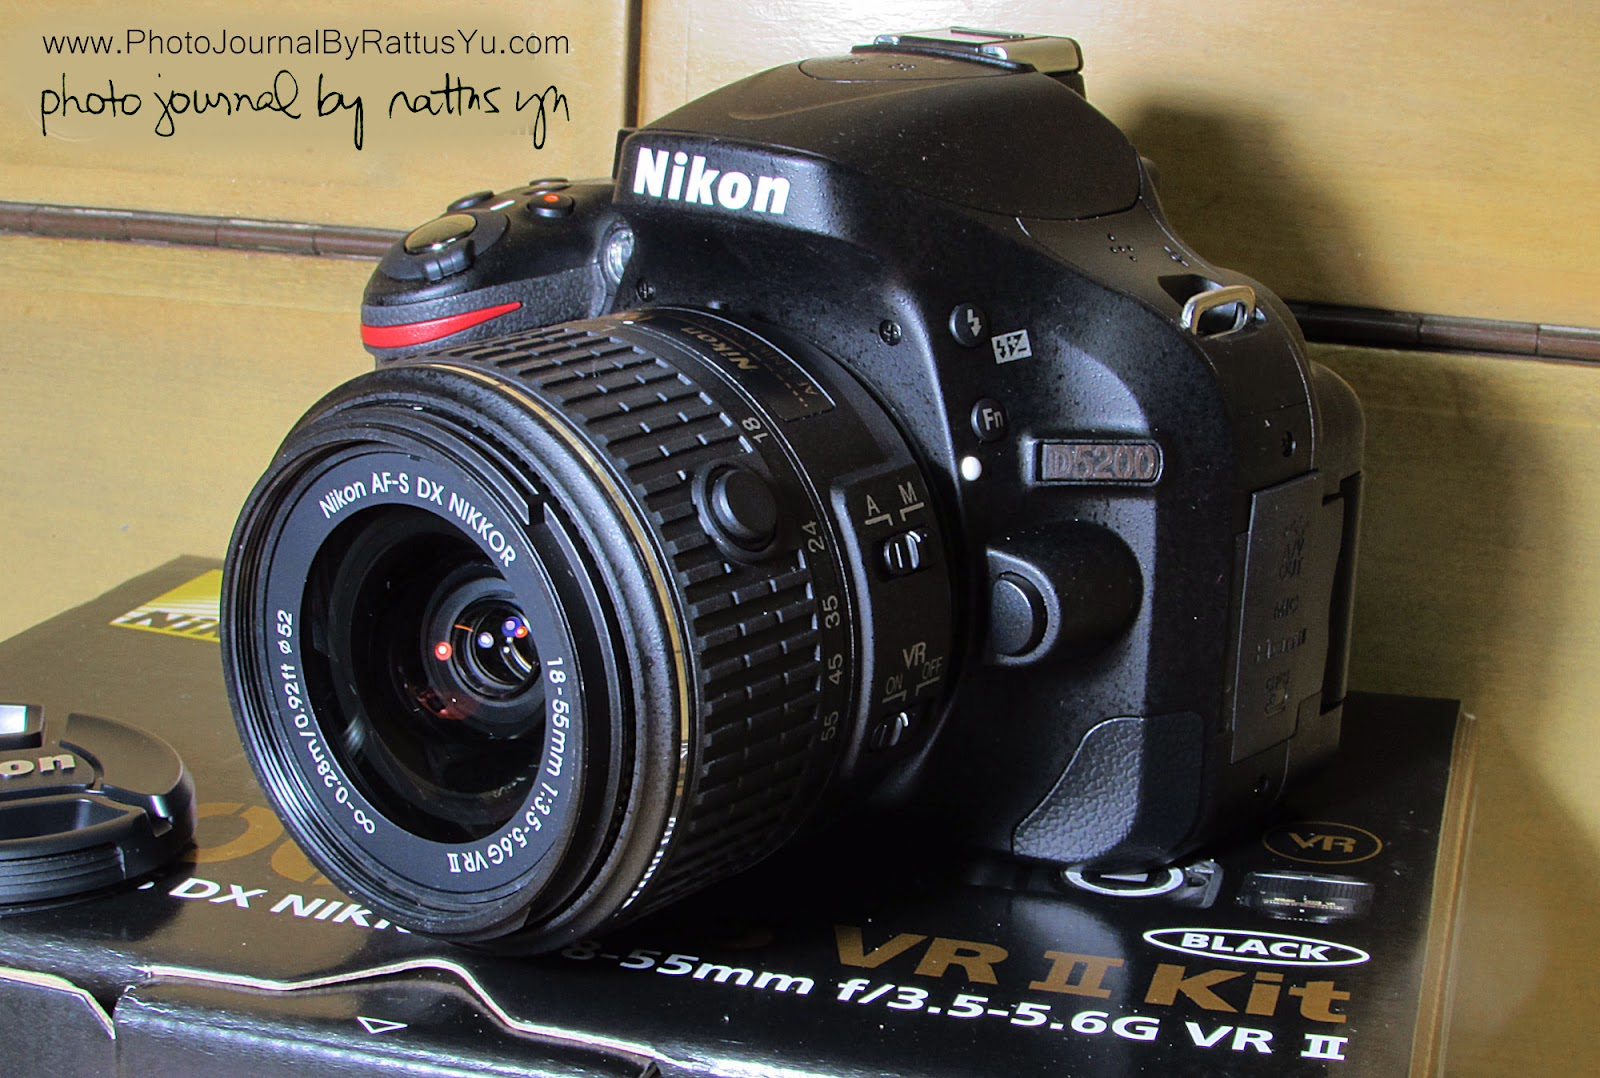 REVIEW: A 5-Part Review of the Nikon D5200 | Lens Shatter By